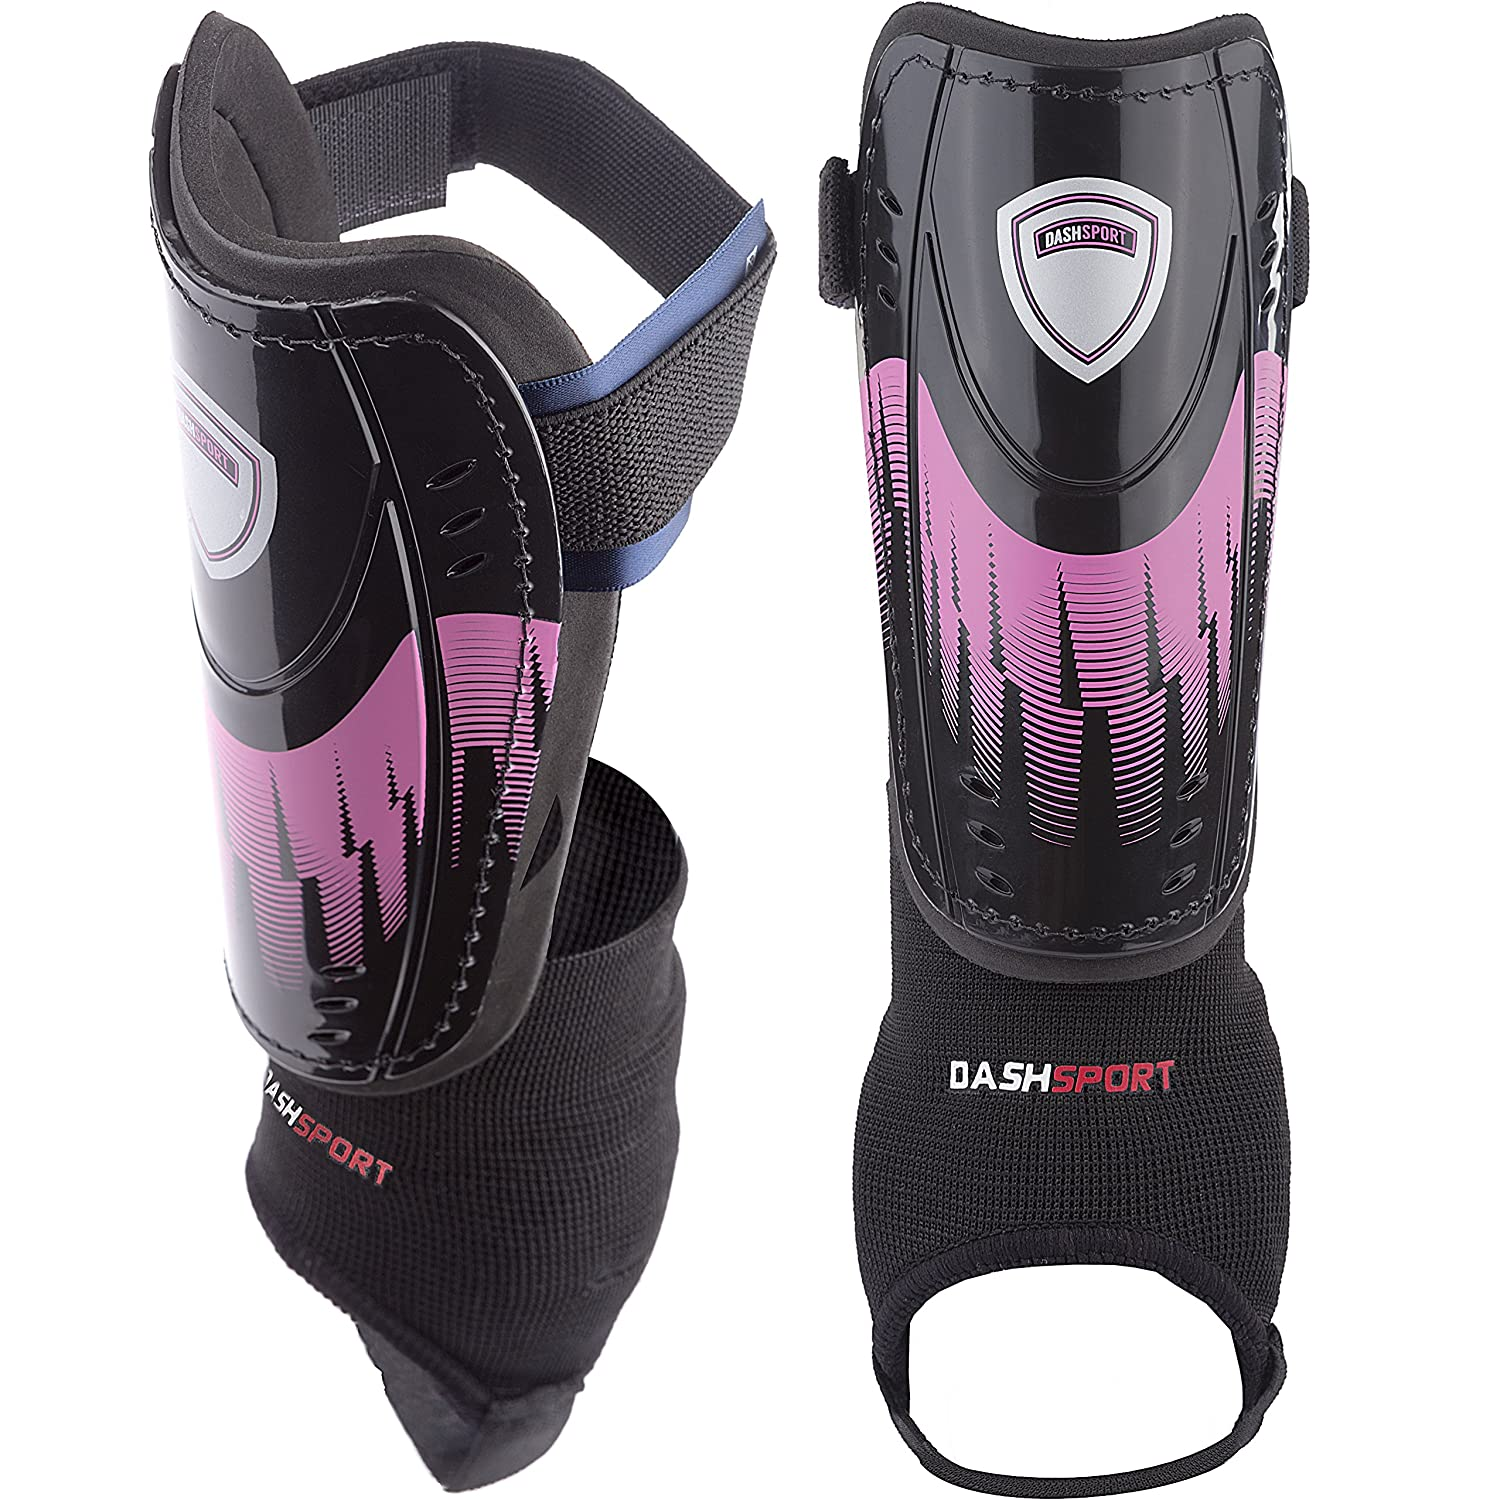 Soccer Shin Guards – ユースサイズ – by dashsport – Bestキッズ用サッカー機器with足首袖 – Great for Boys and Girls B01M7SFGDY X-Small 3'3 3'11|ピンク ピンク X-Small 3'3 3'11